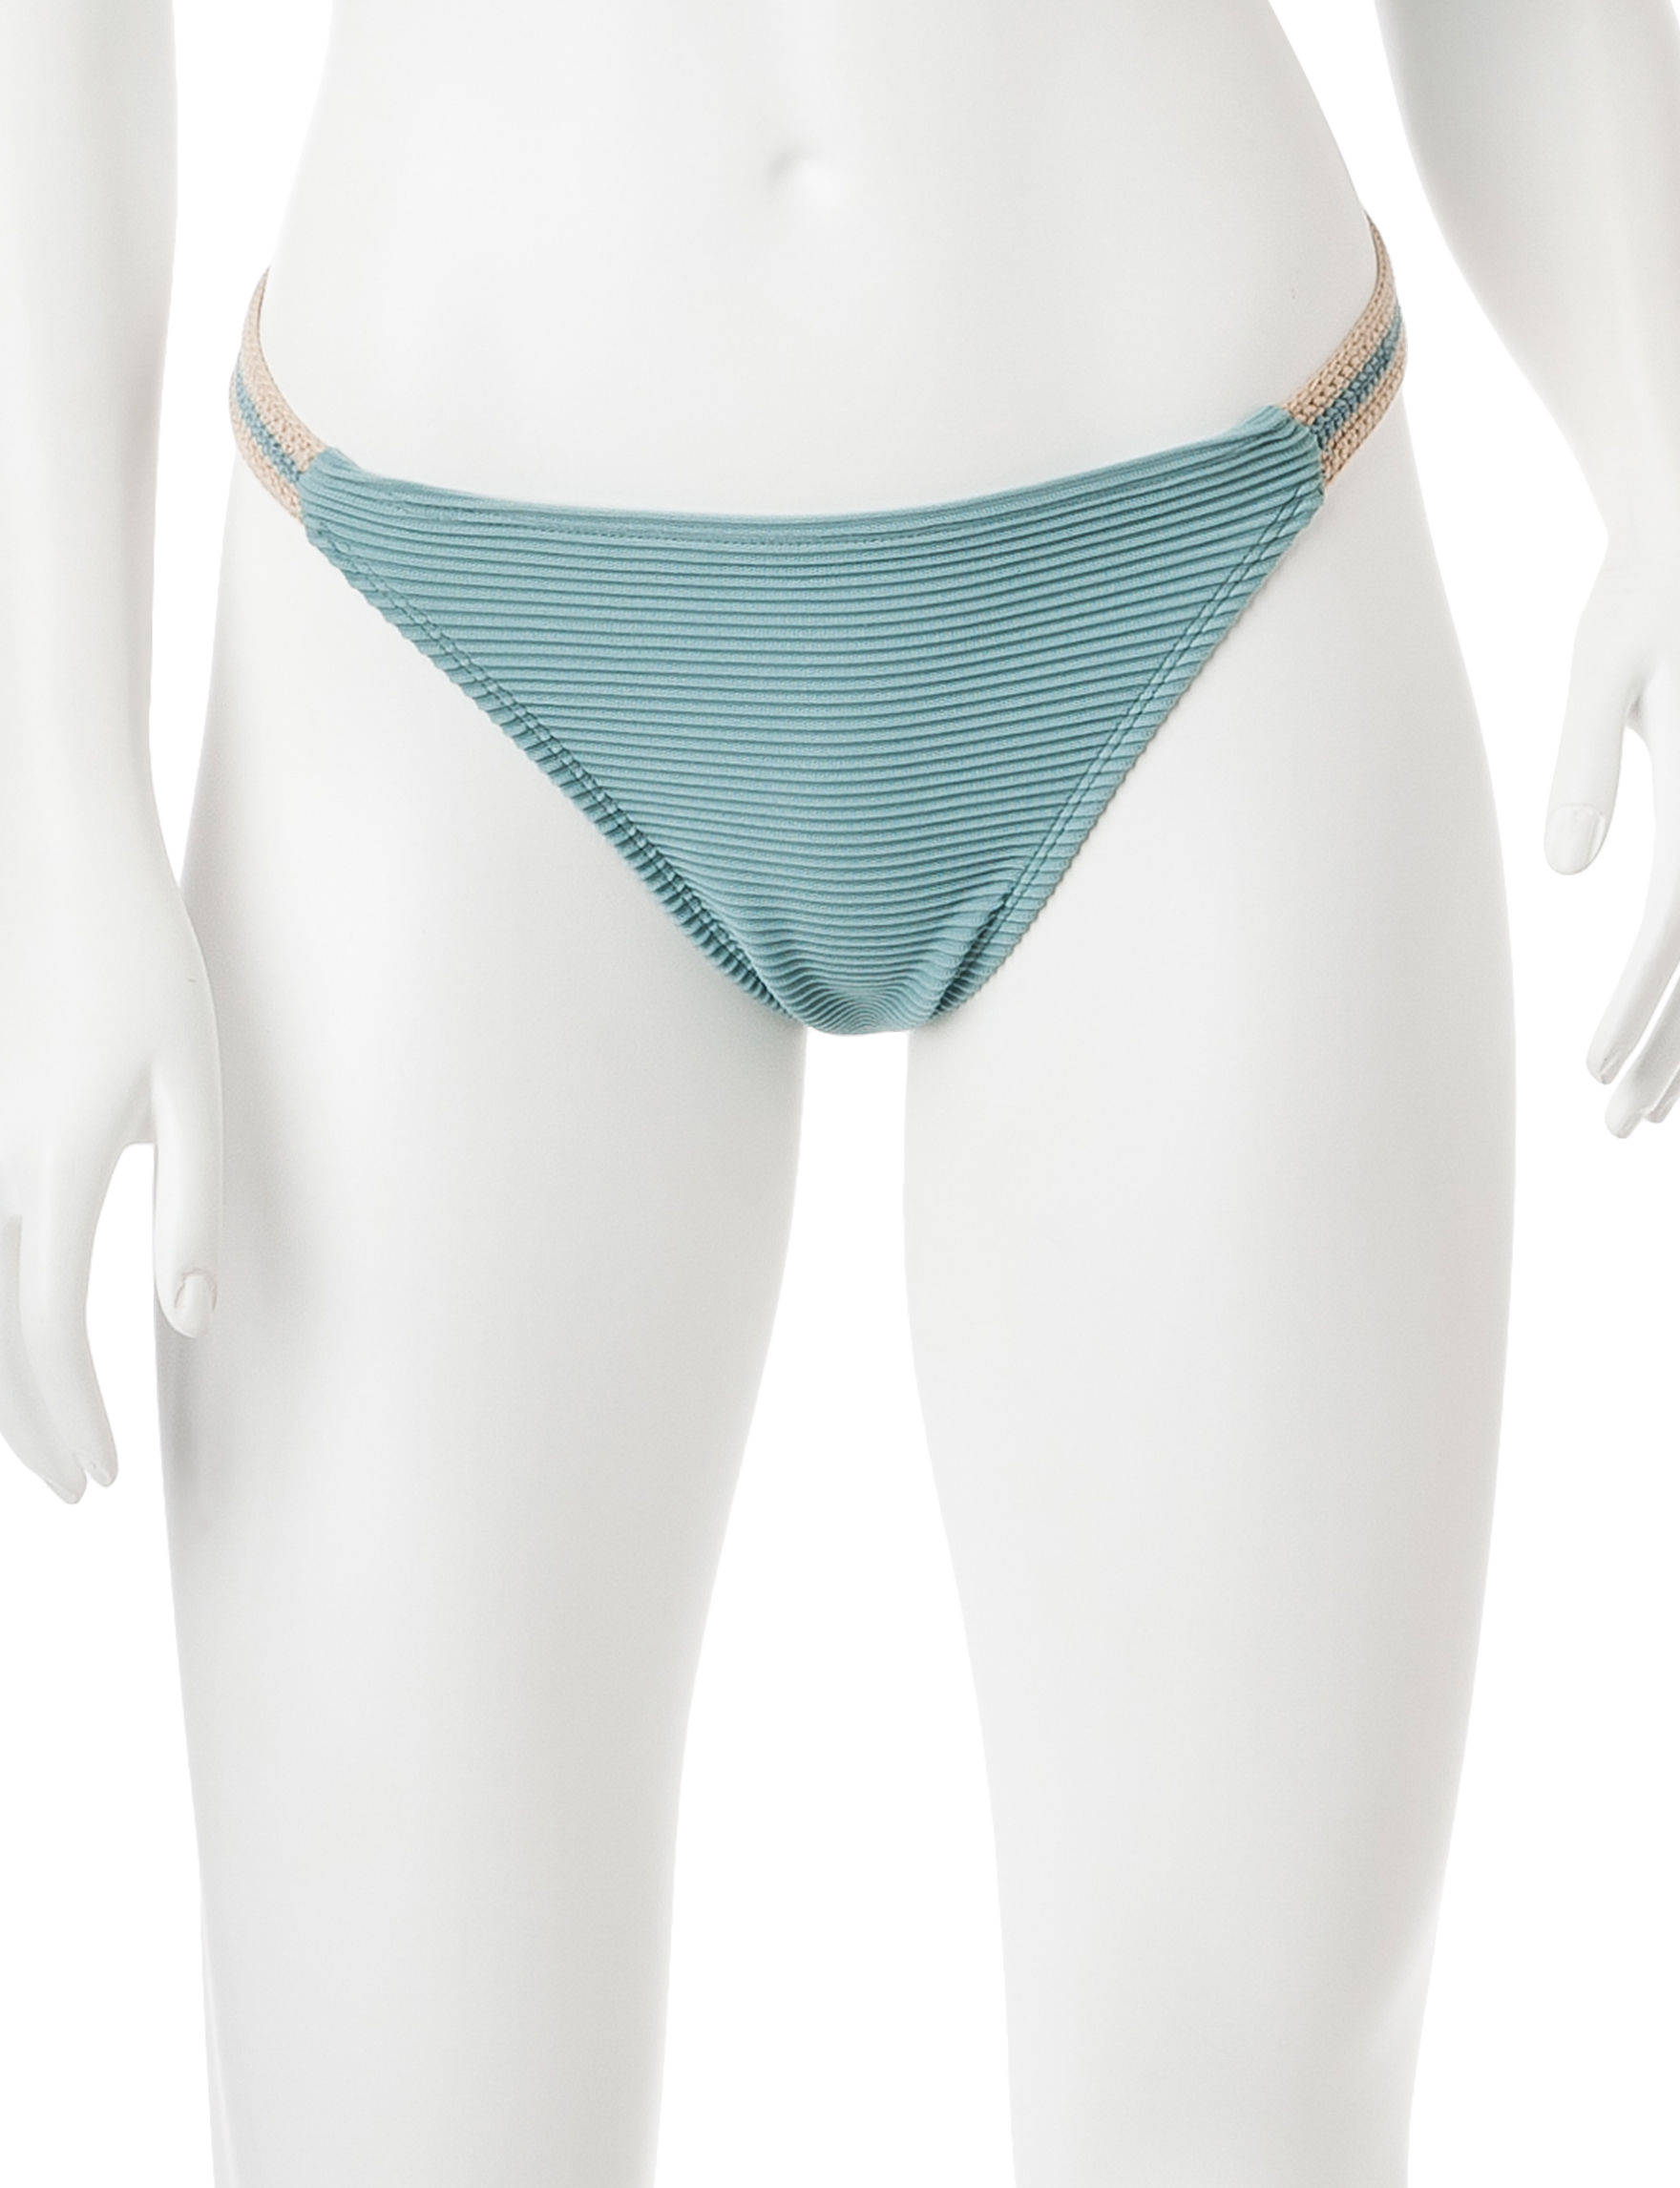 99 Degrees Seagreen Swimsuit Bottoms Hipster